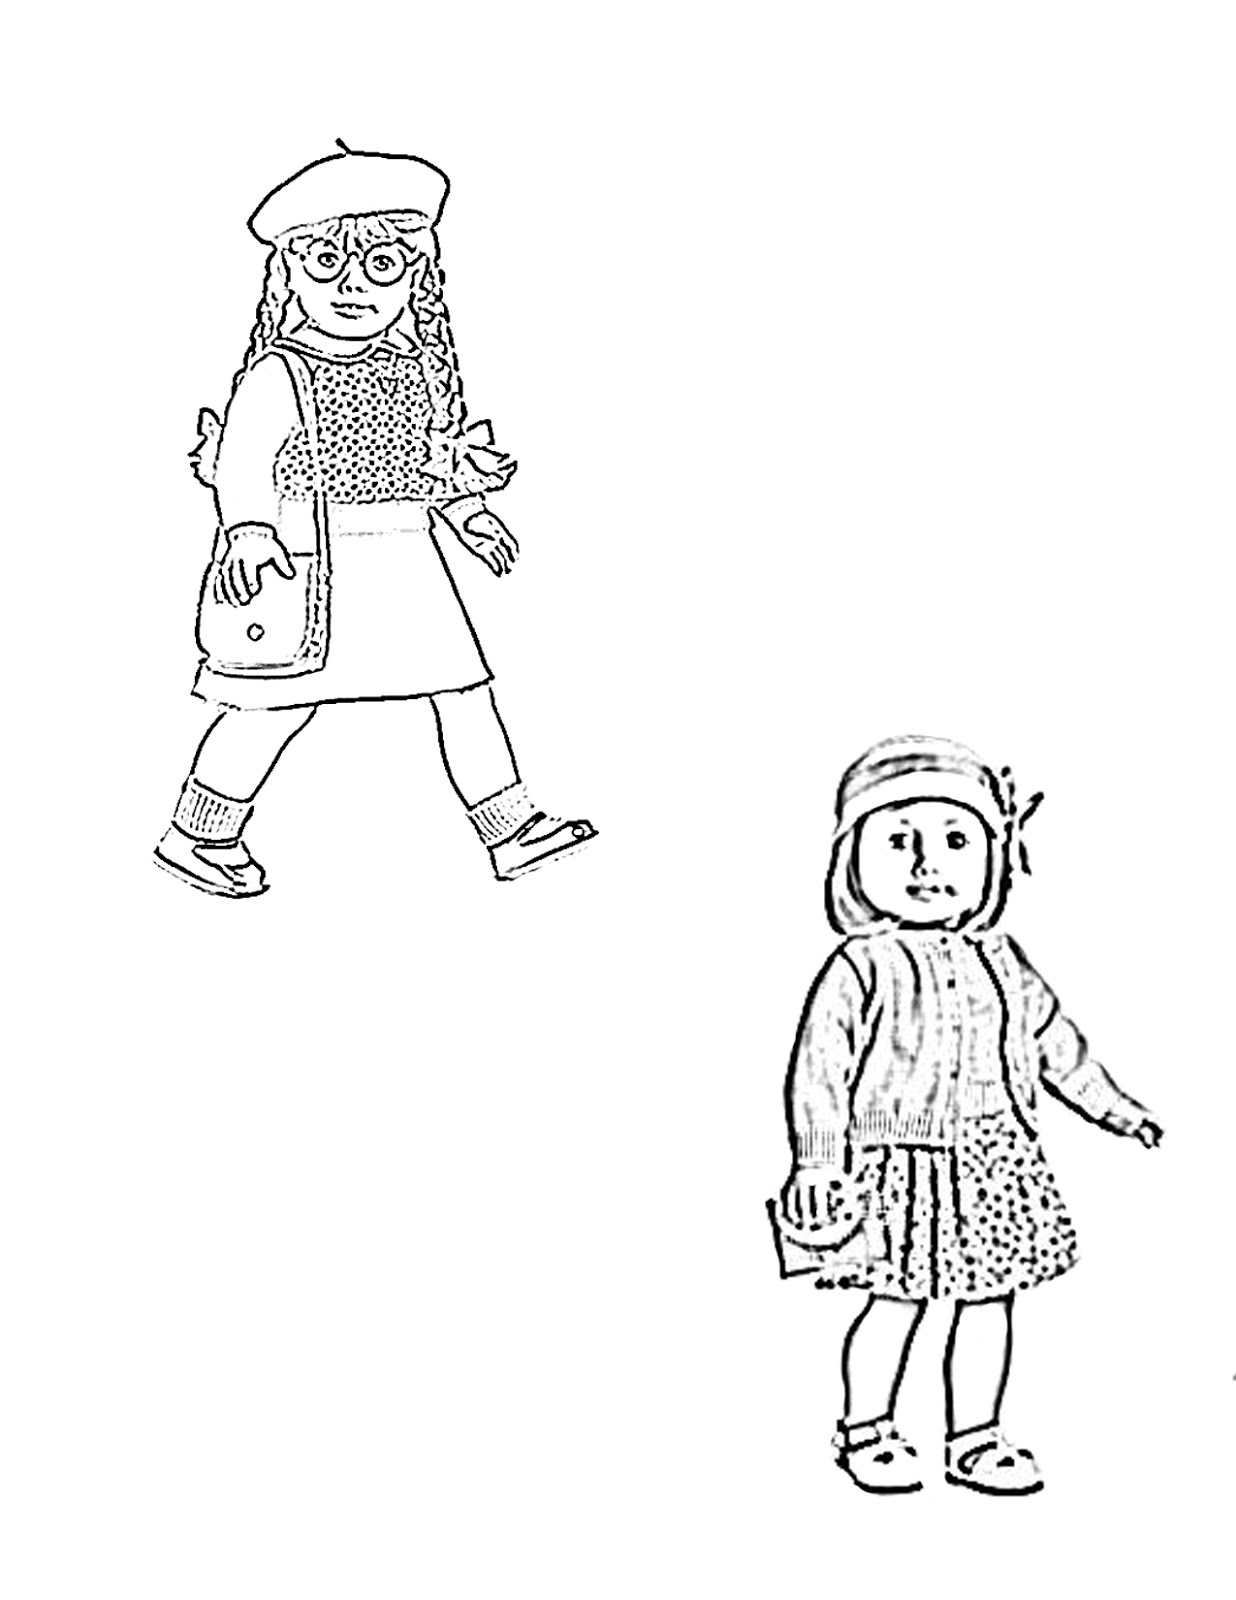 american girl doll coloring pages to print printable american girl doll coloring pages for kids coloring pages american girl to print doll